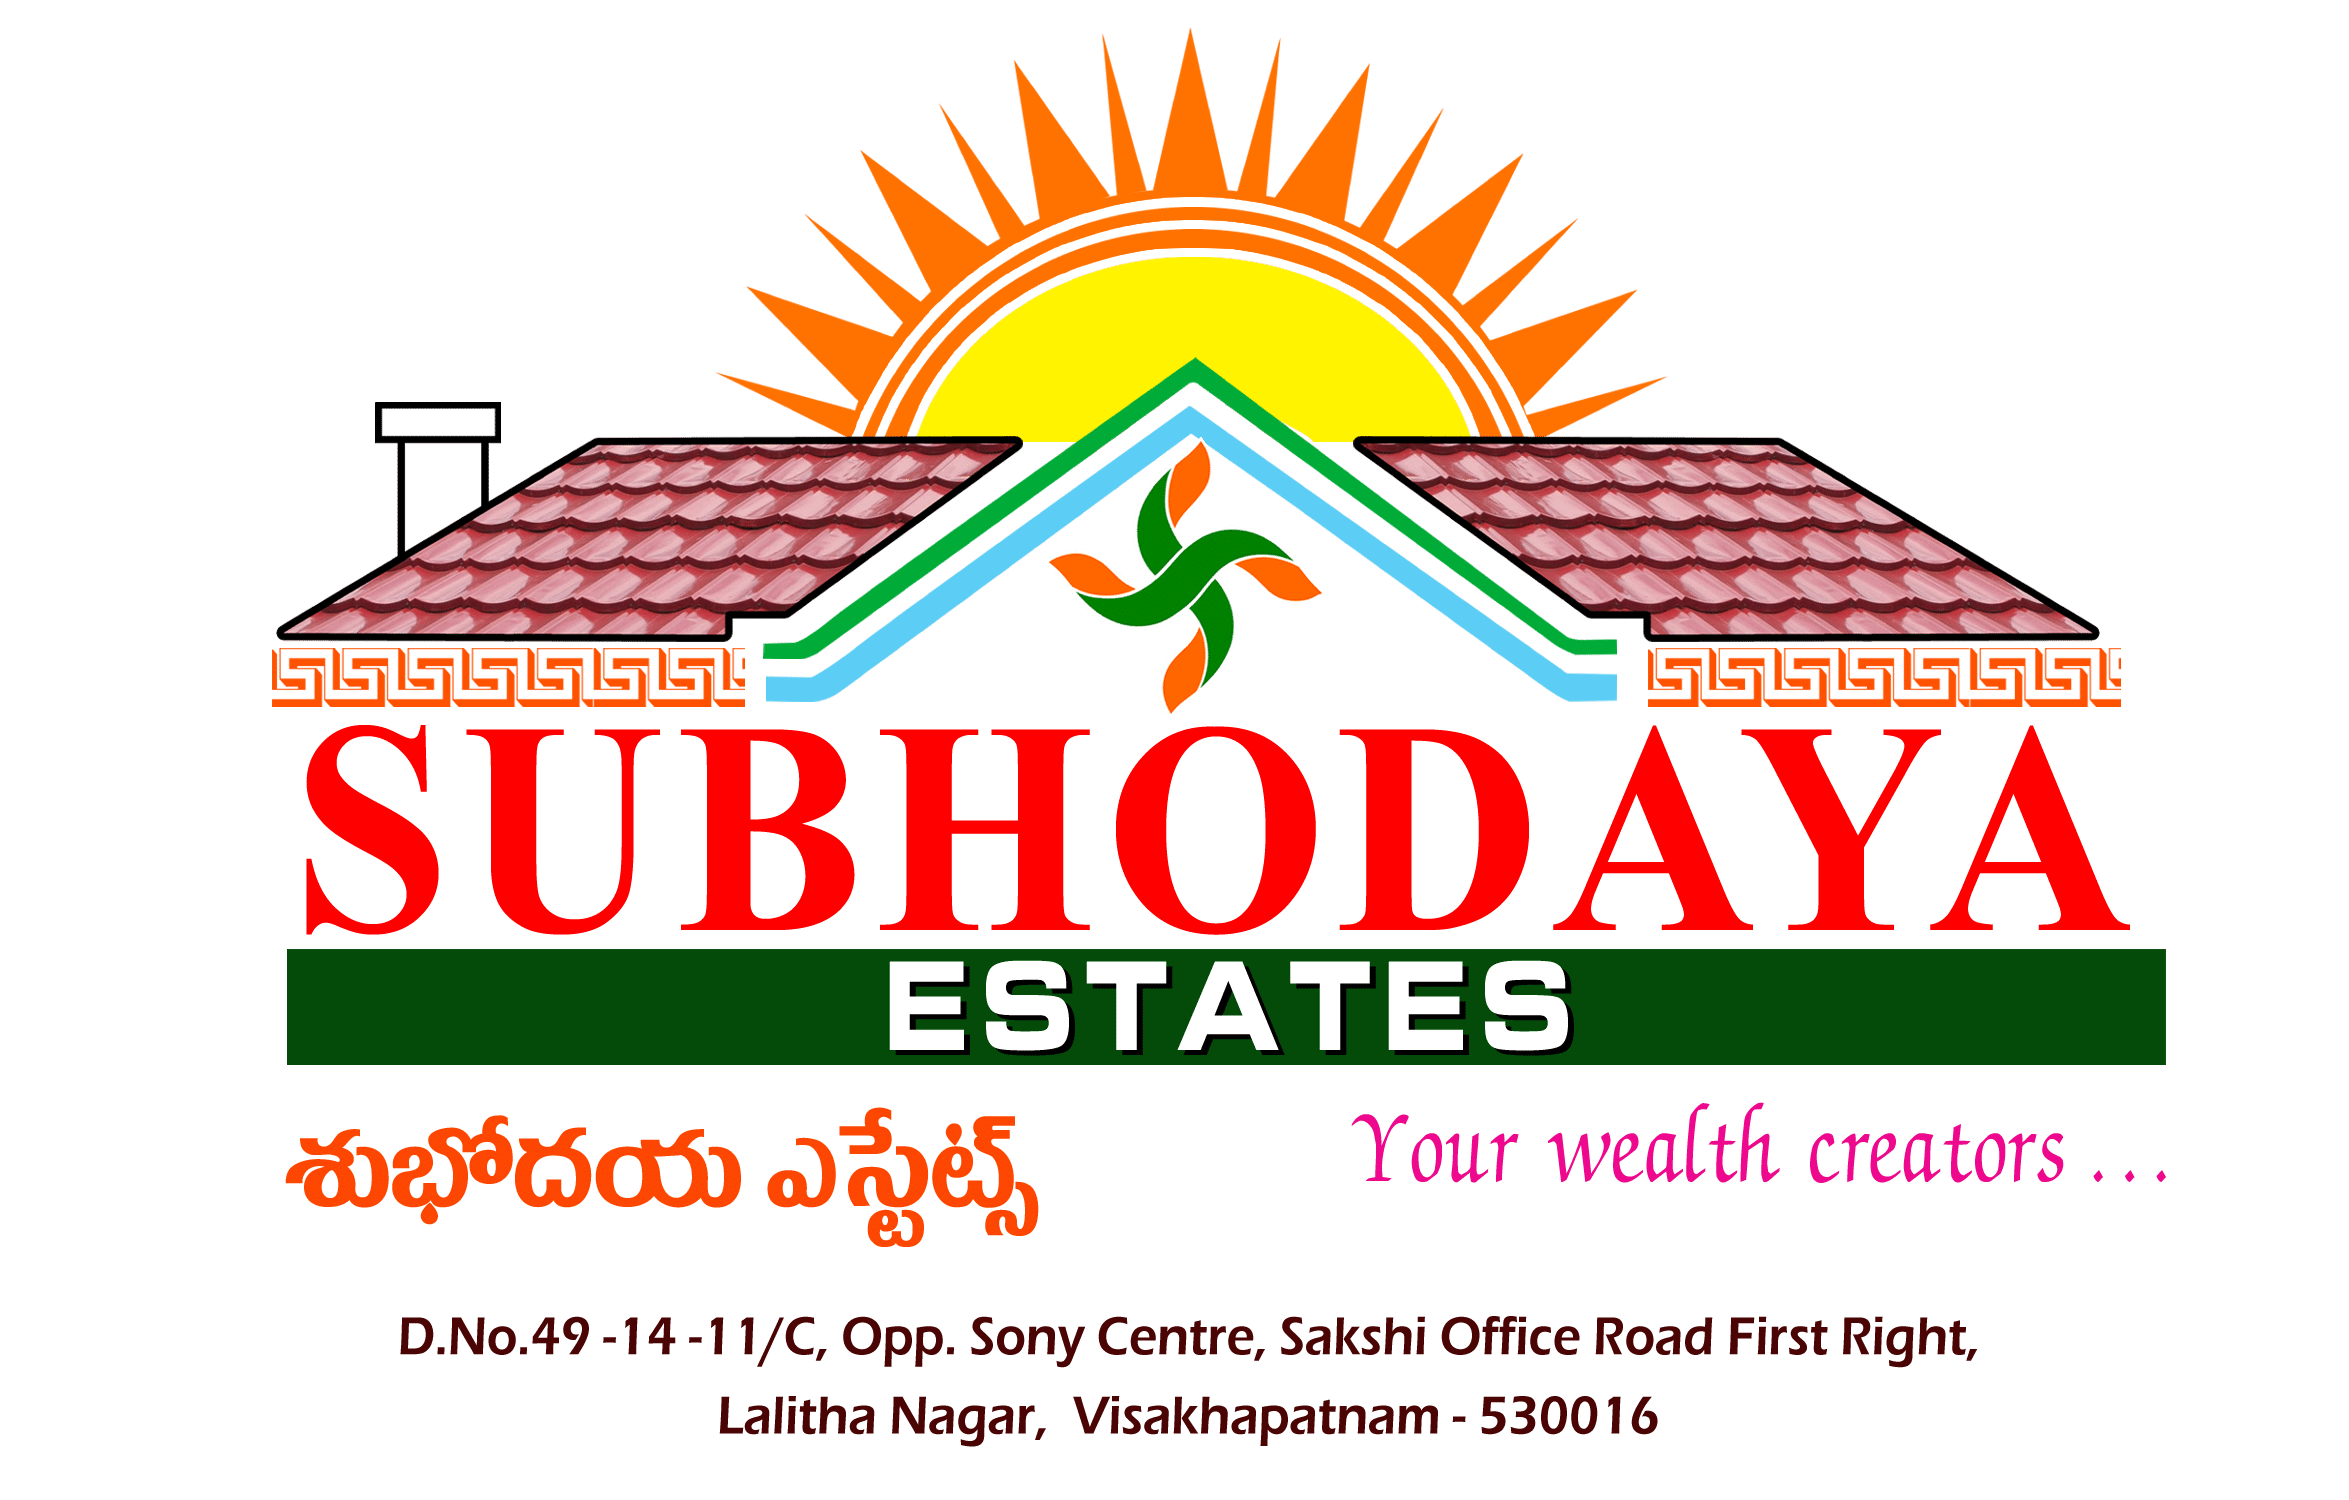 Looking For Best Property || Contact Us || Subhodaya Estates